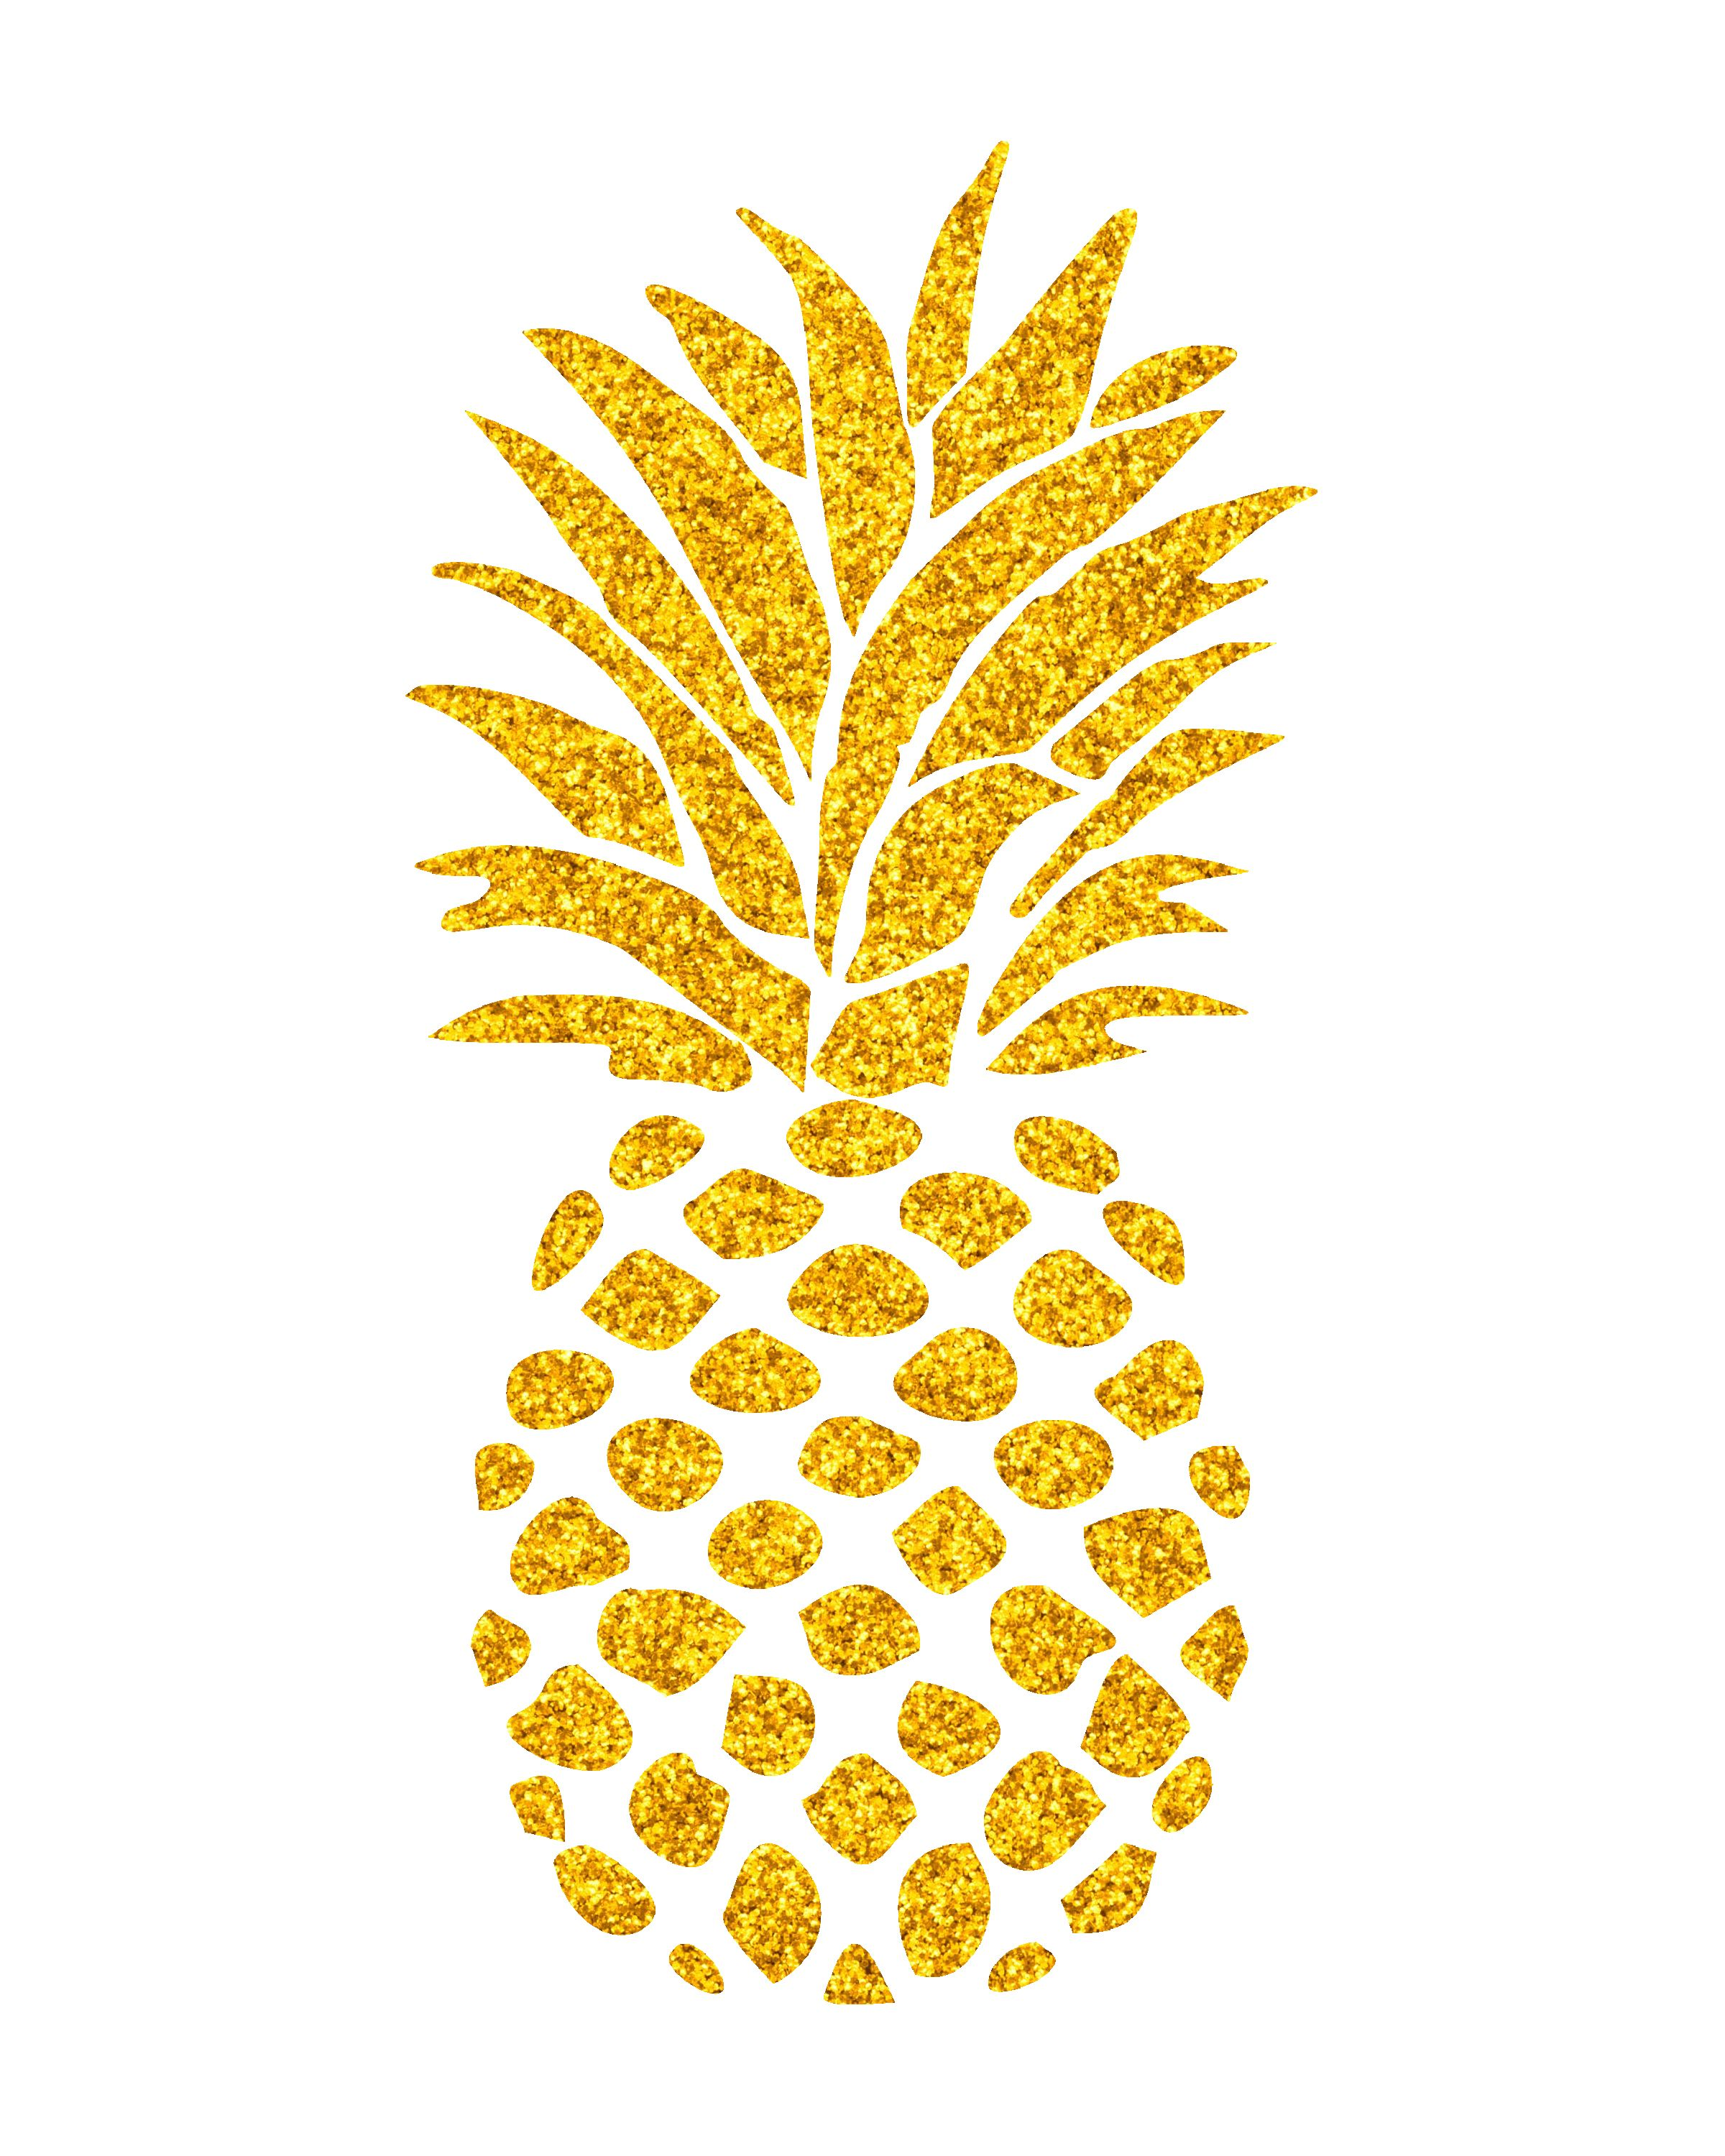 Free Pineapple Wall Art | MishMash By Ash | Illustrations ...